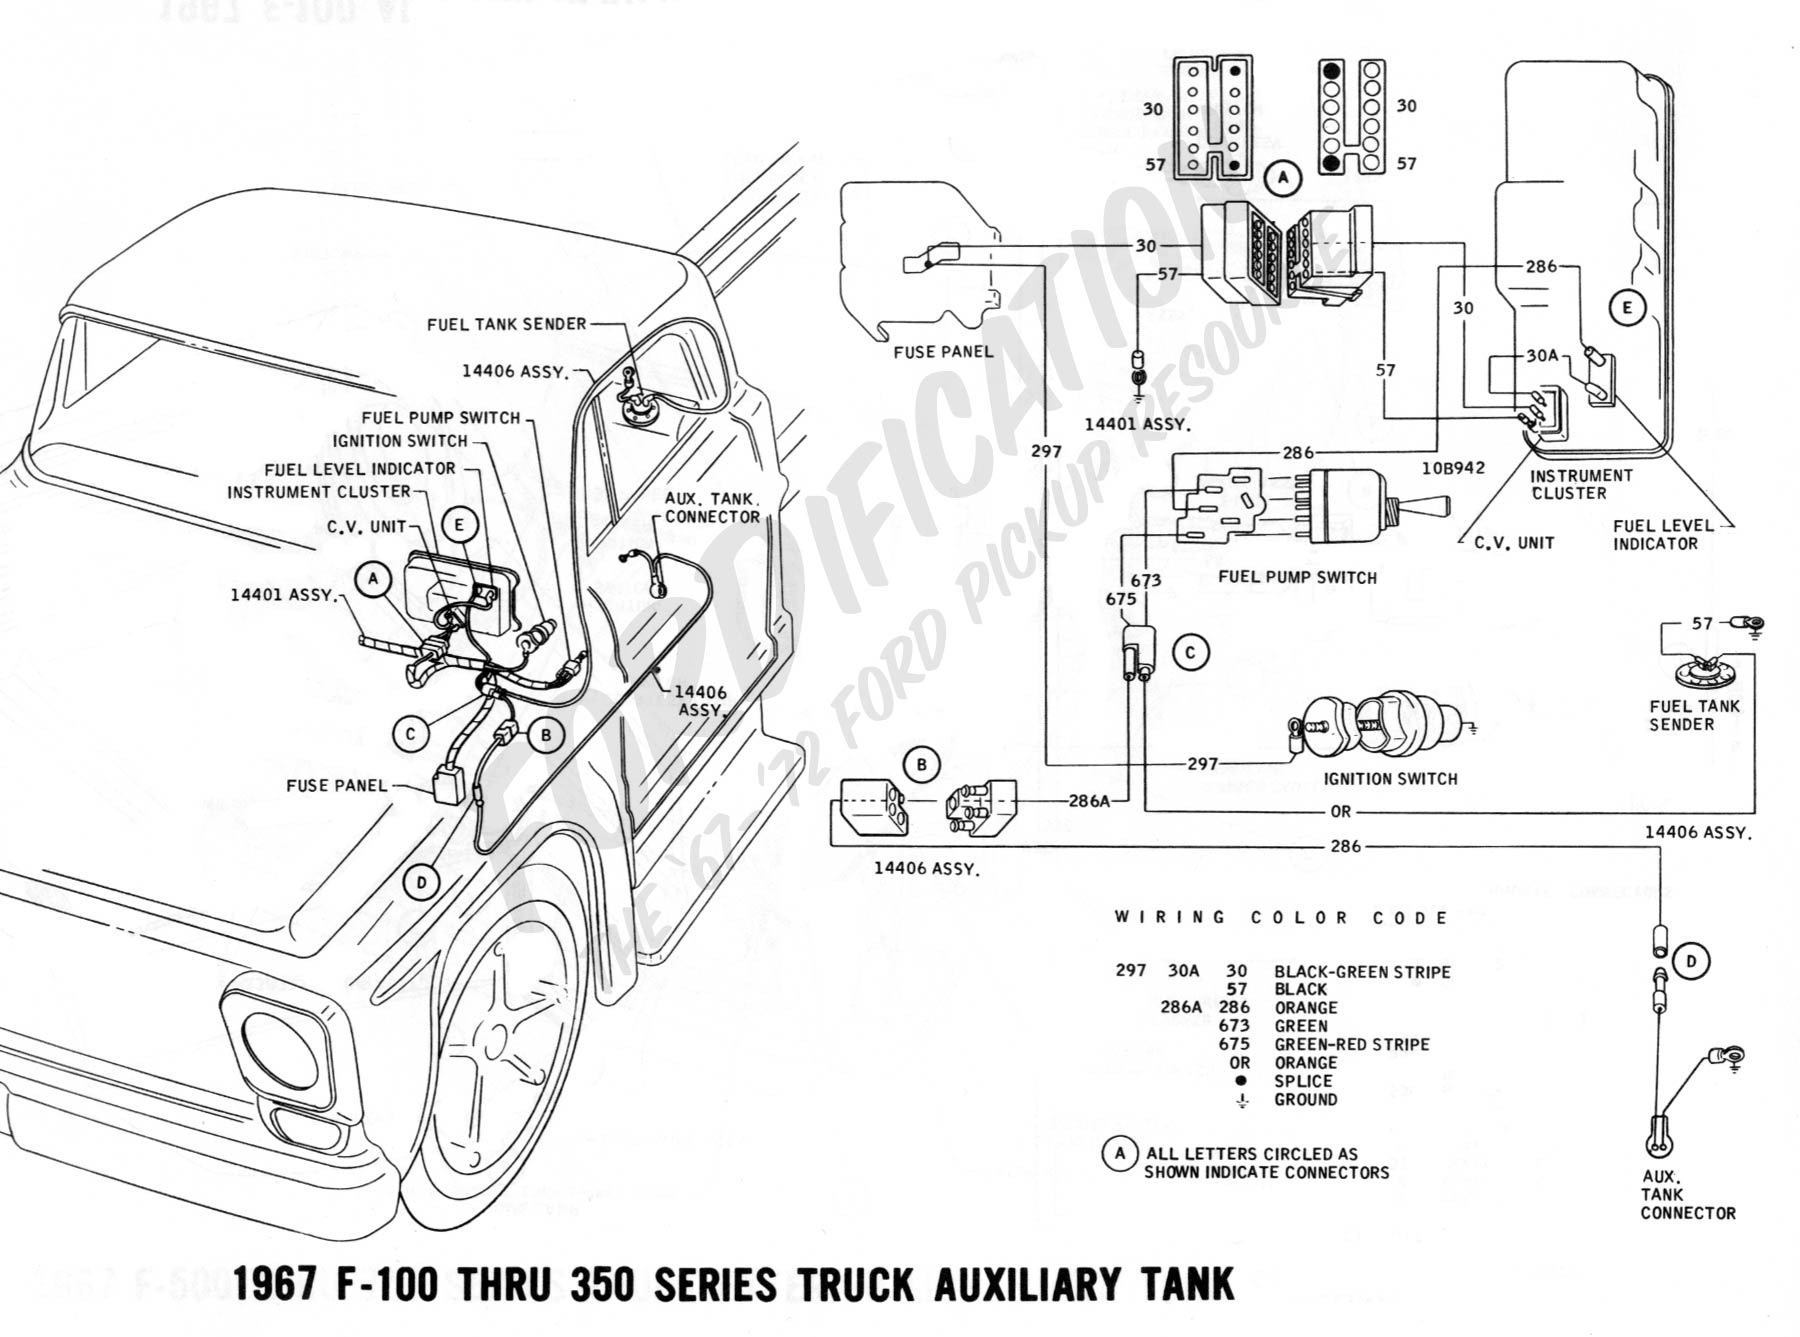 67 Mustang Turn Signal Wiring Free Download Wiring Diagram Schematic